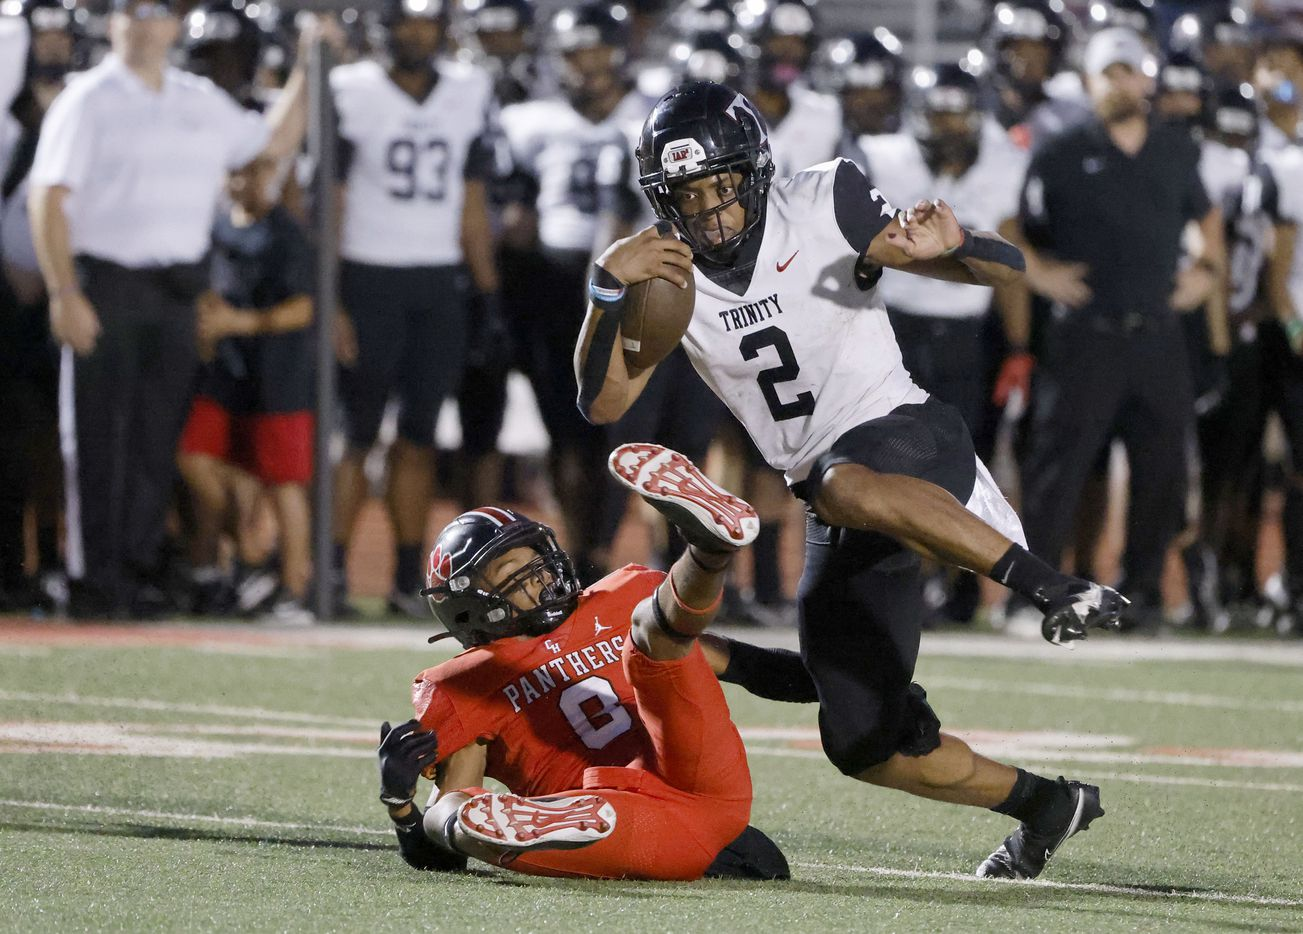 Euless Trinity quarterback Ollie Gordon (2) runs for yardage as he is defended by Colleyville Heritage player Dylahn McKinney (8) during the first half of a high school football game in Grapevine, Texas on Friday, Sept. 10, 2021. (Michael Ainsworth/Special Contributor)